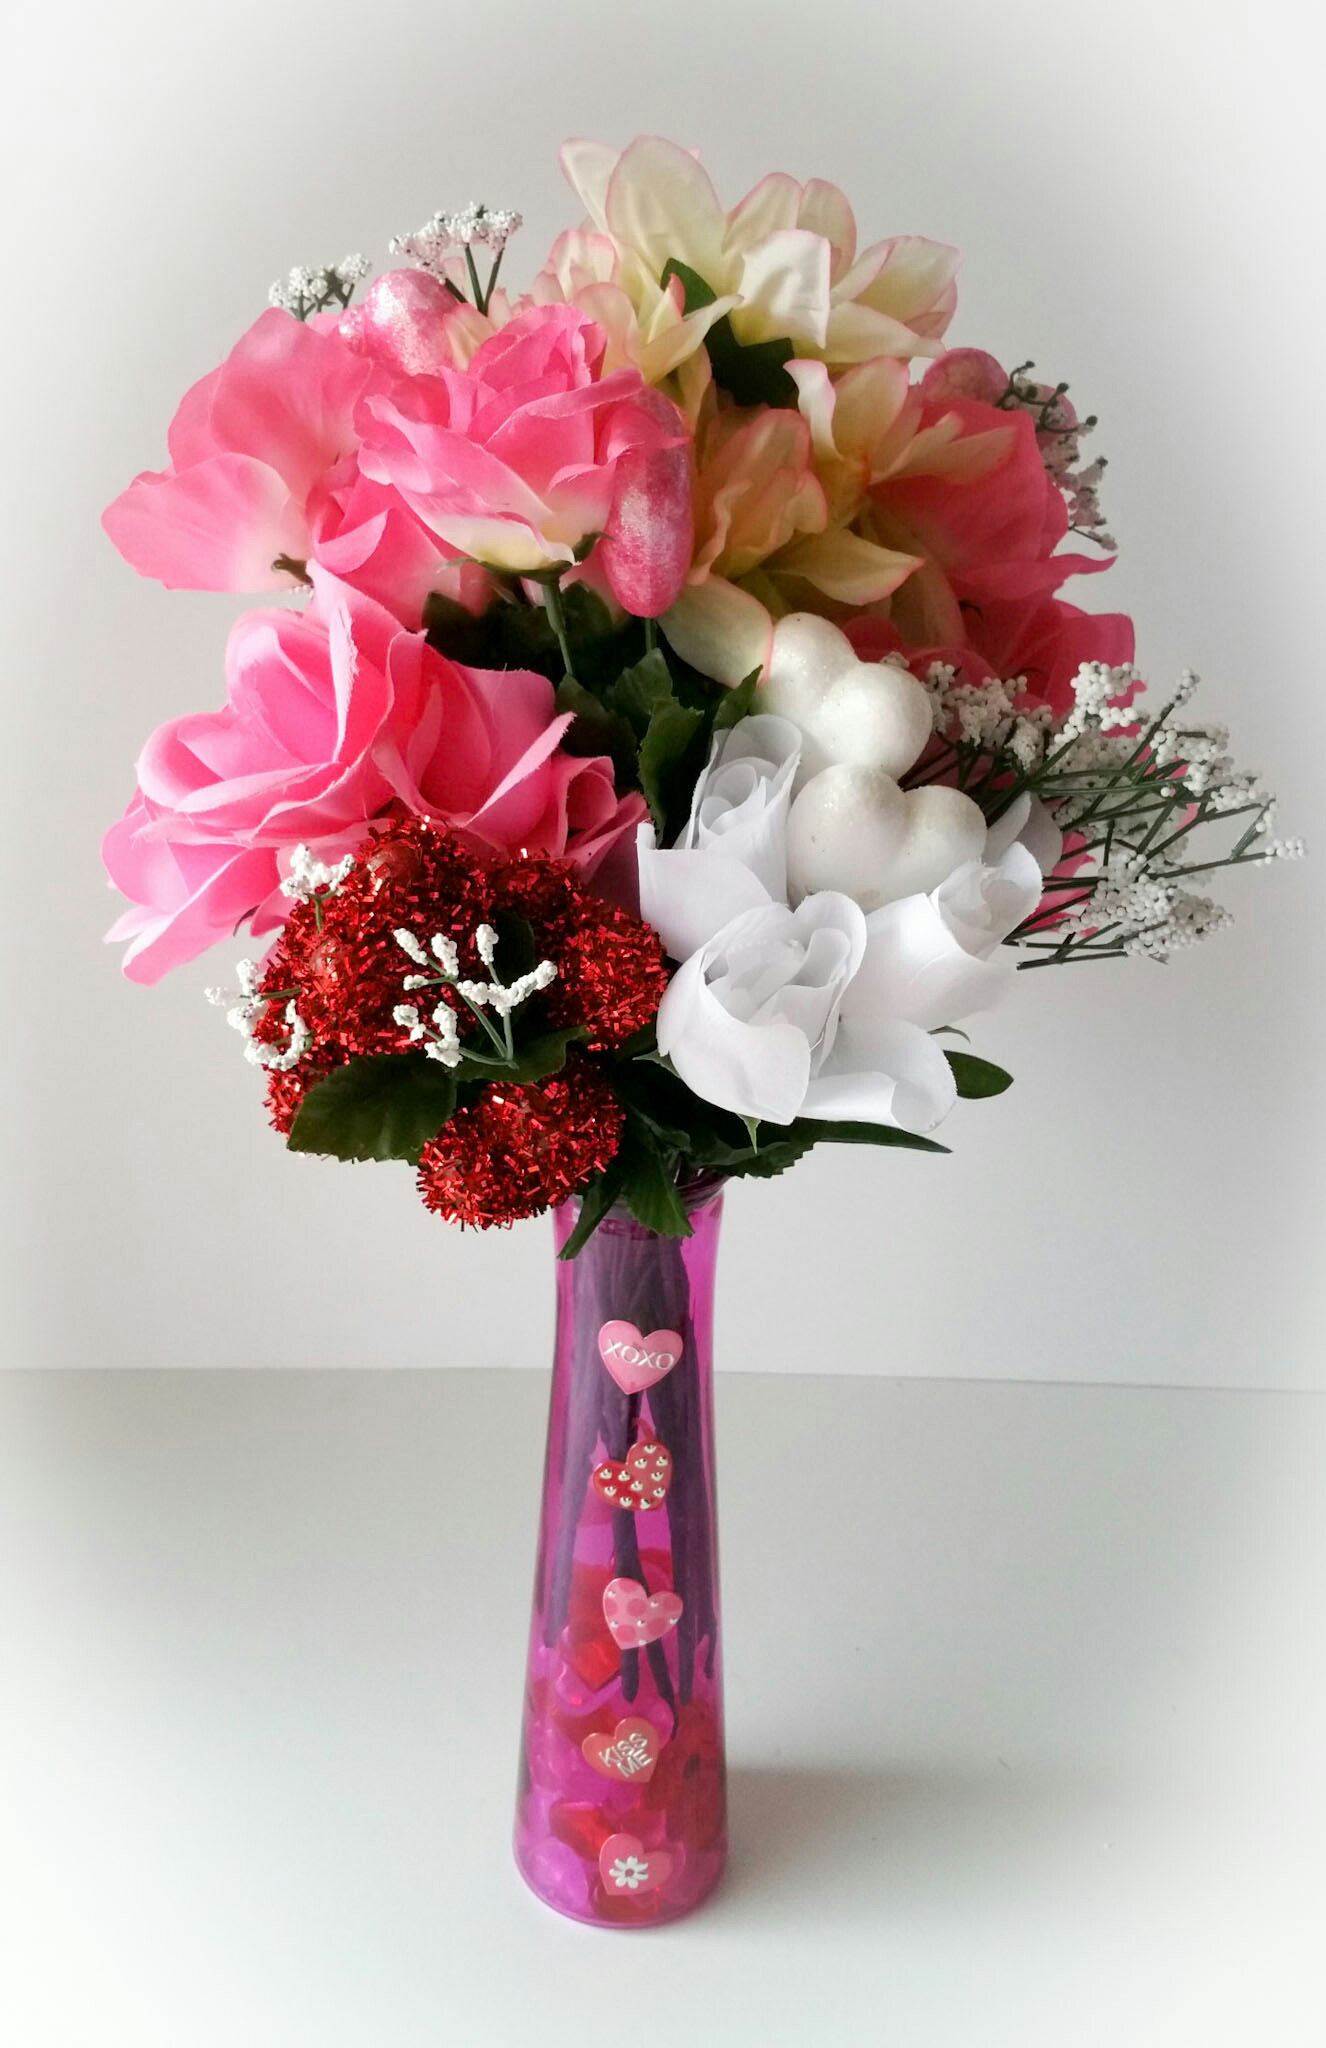 Super-Cute-DIY-Heart-Vase-Bouquet-Six-LiWBF